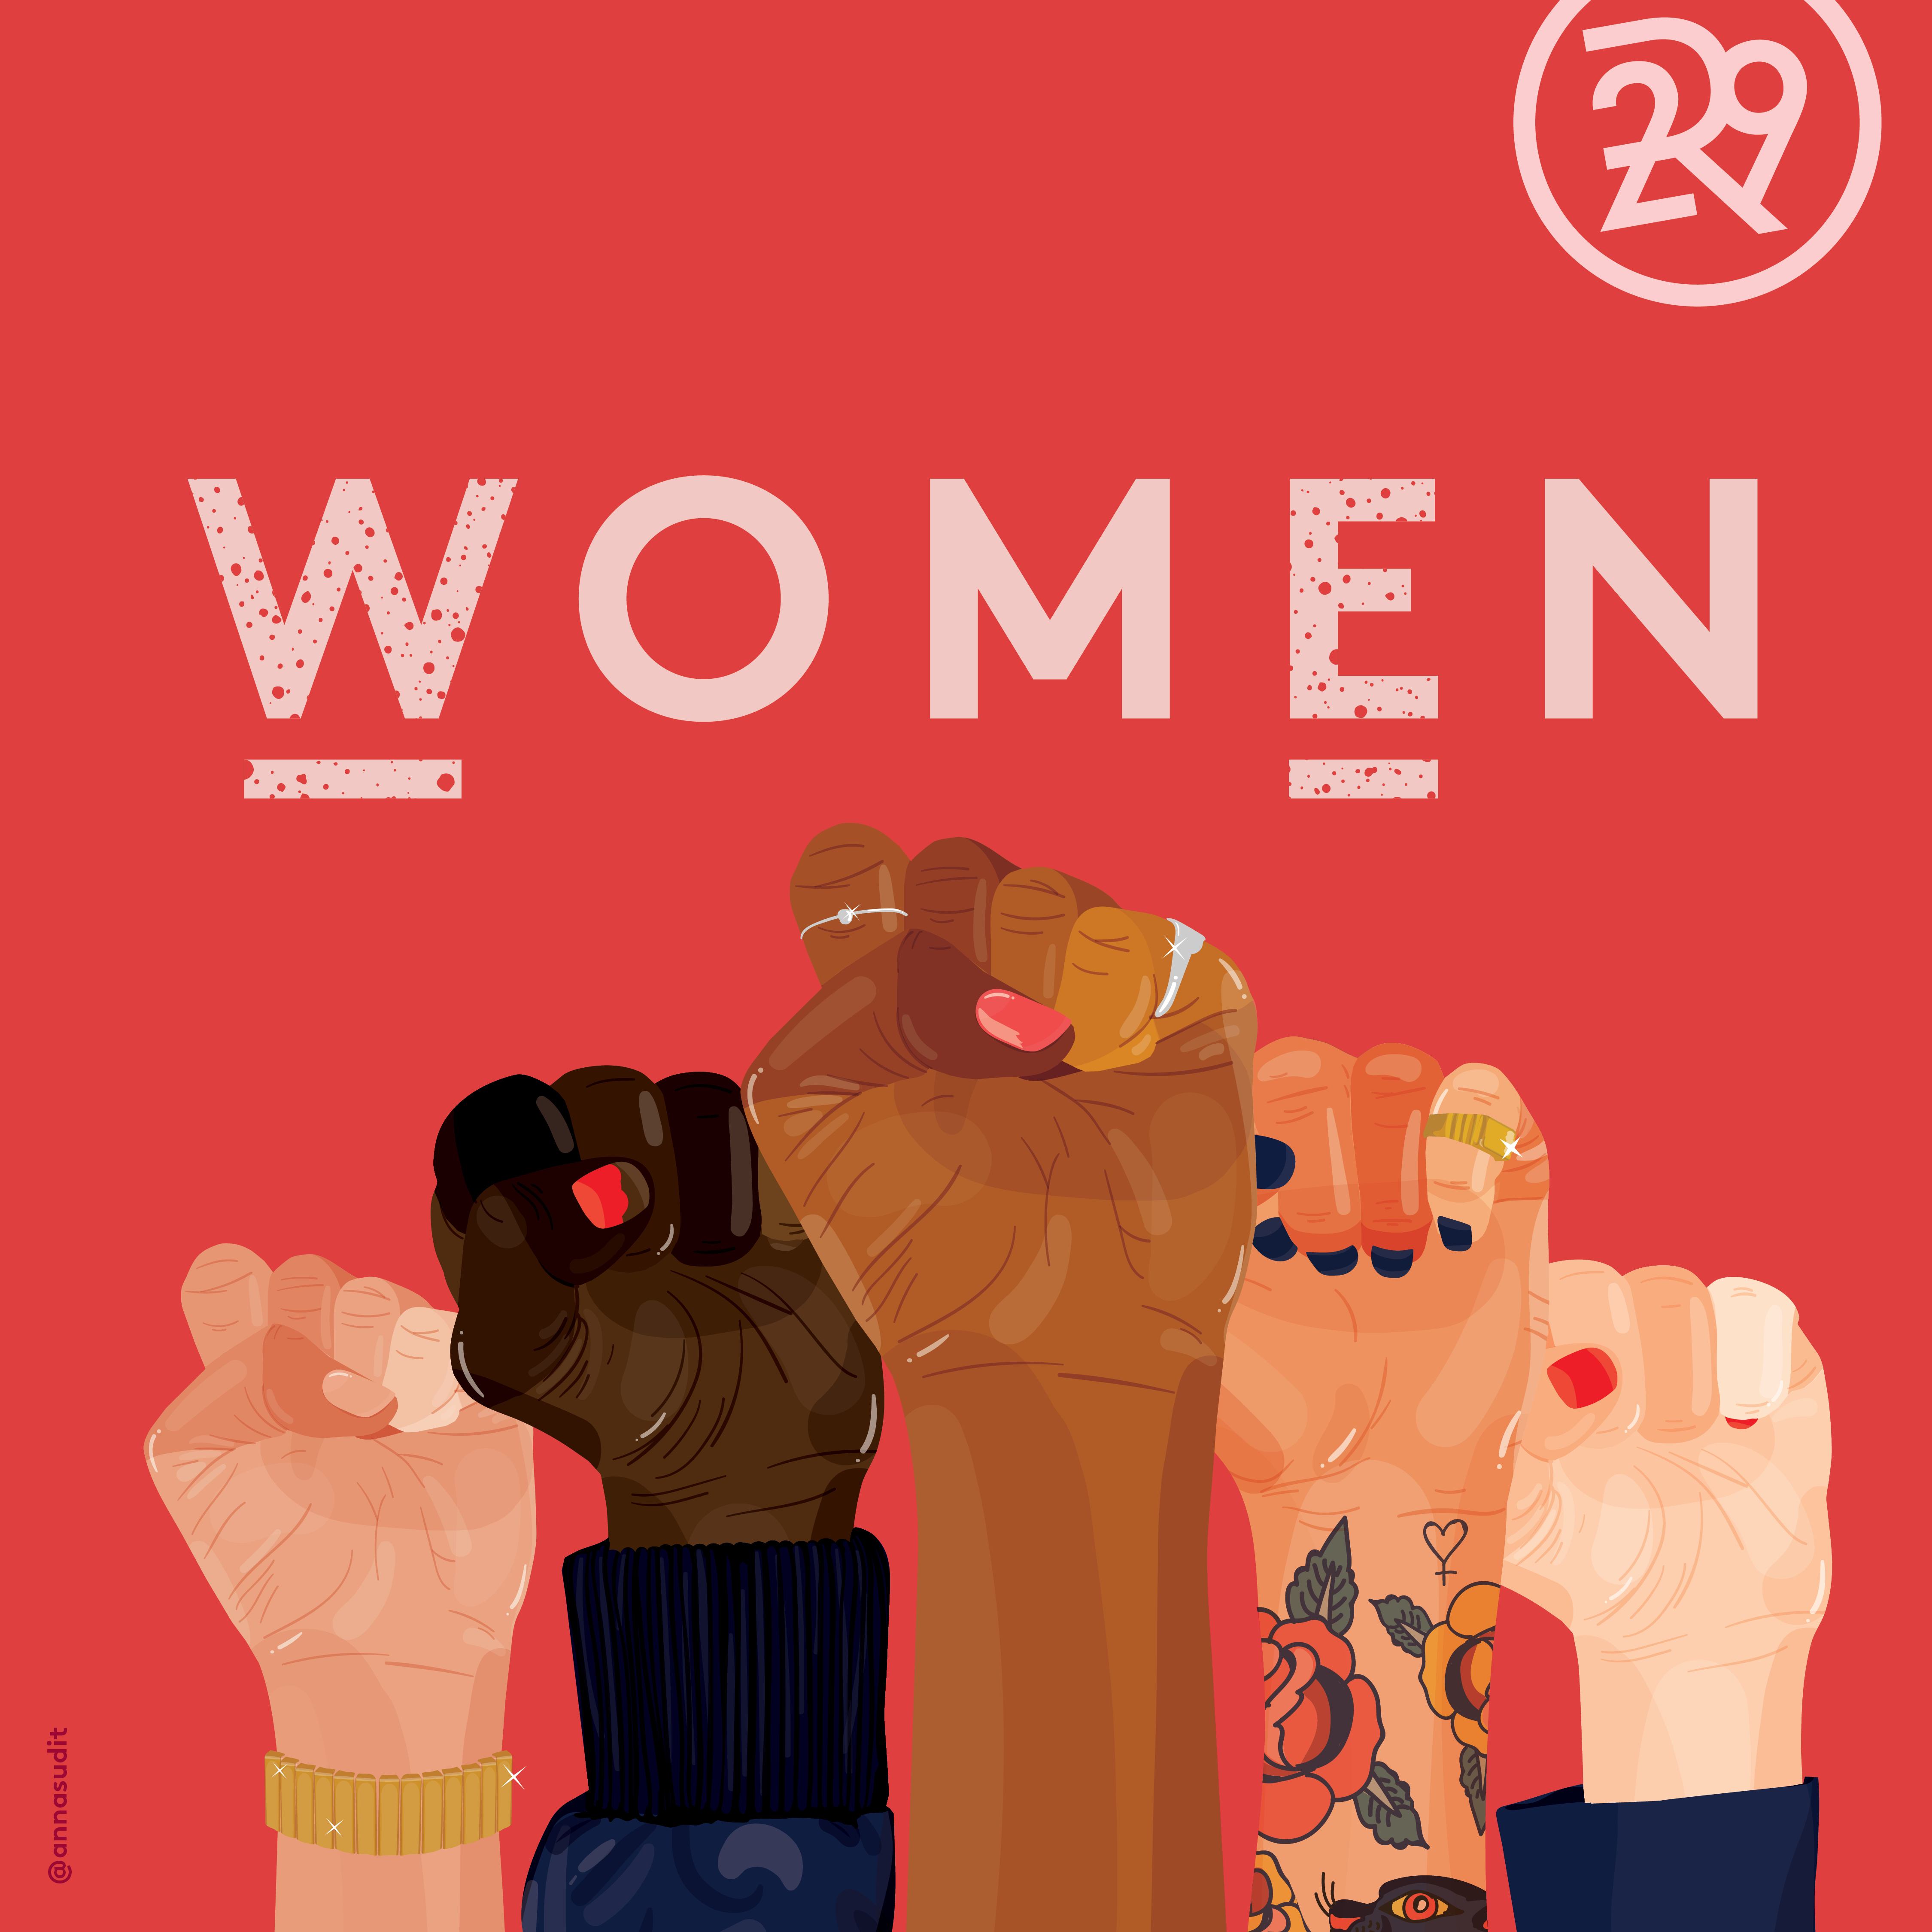 Poster created by Anna Sudit for Refinery29 in support of the Women's March earlier this year. Refinery29 commissioned a series of posters that women could download and print out